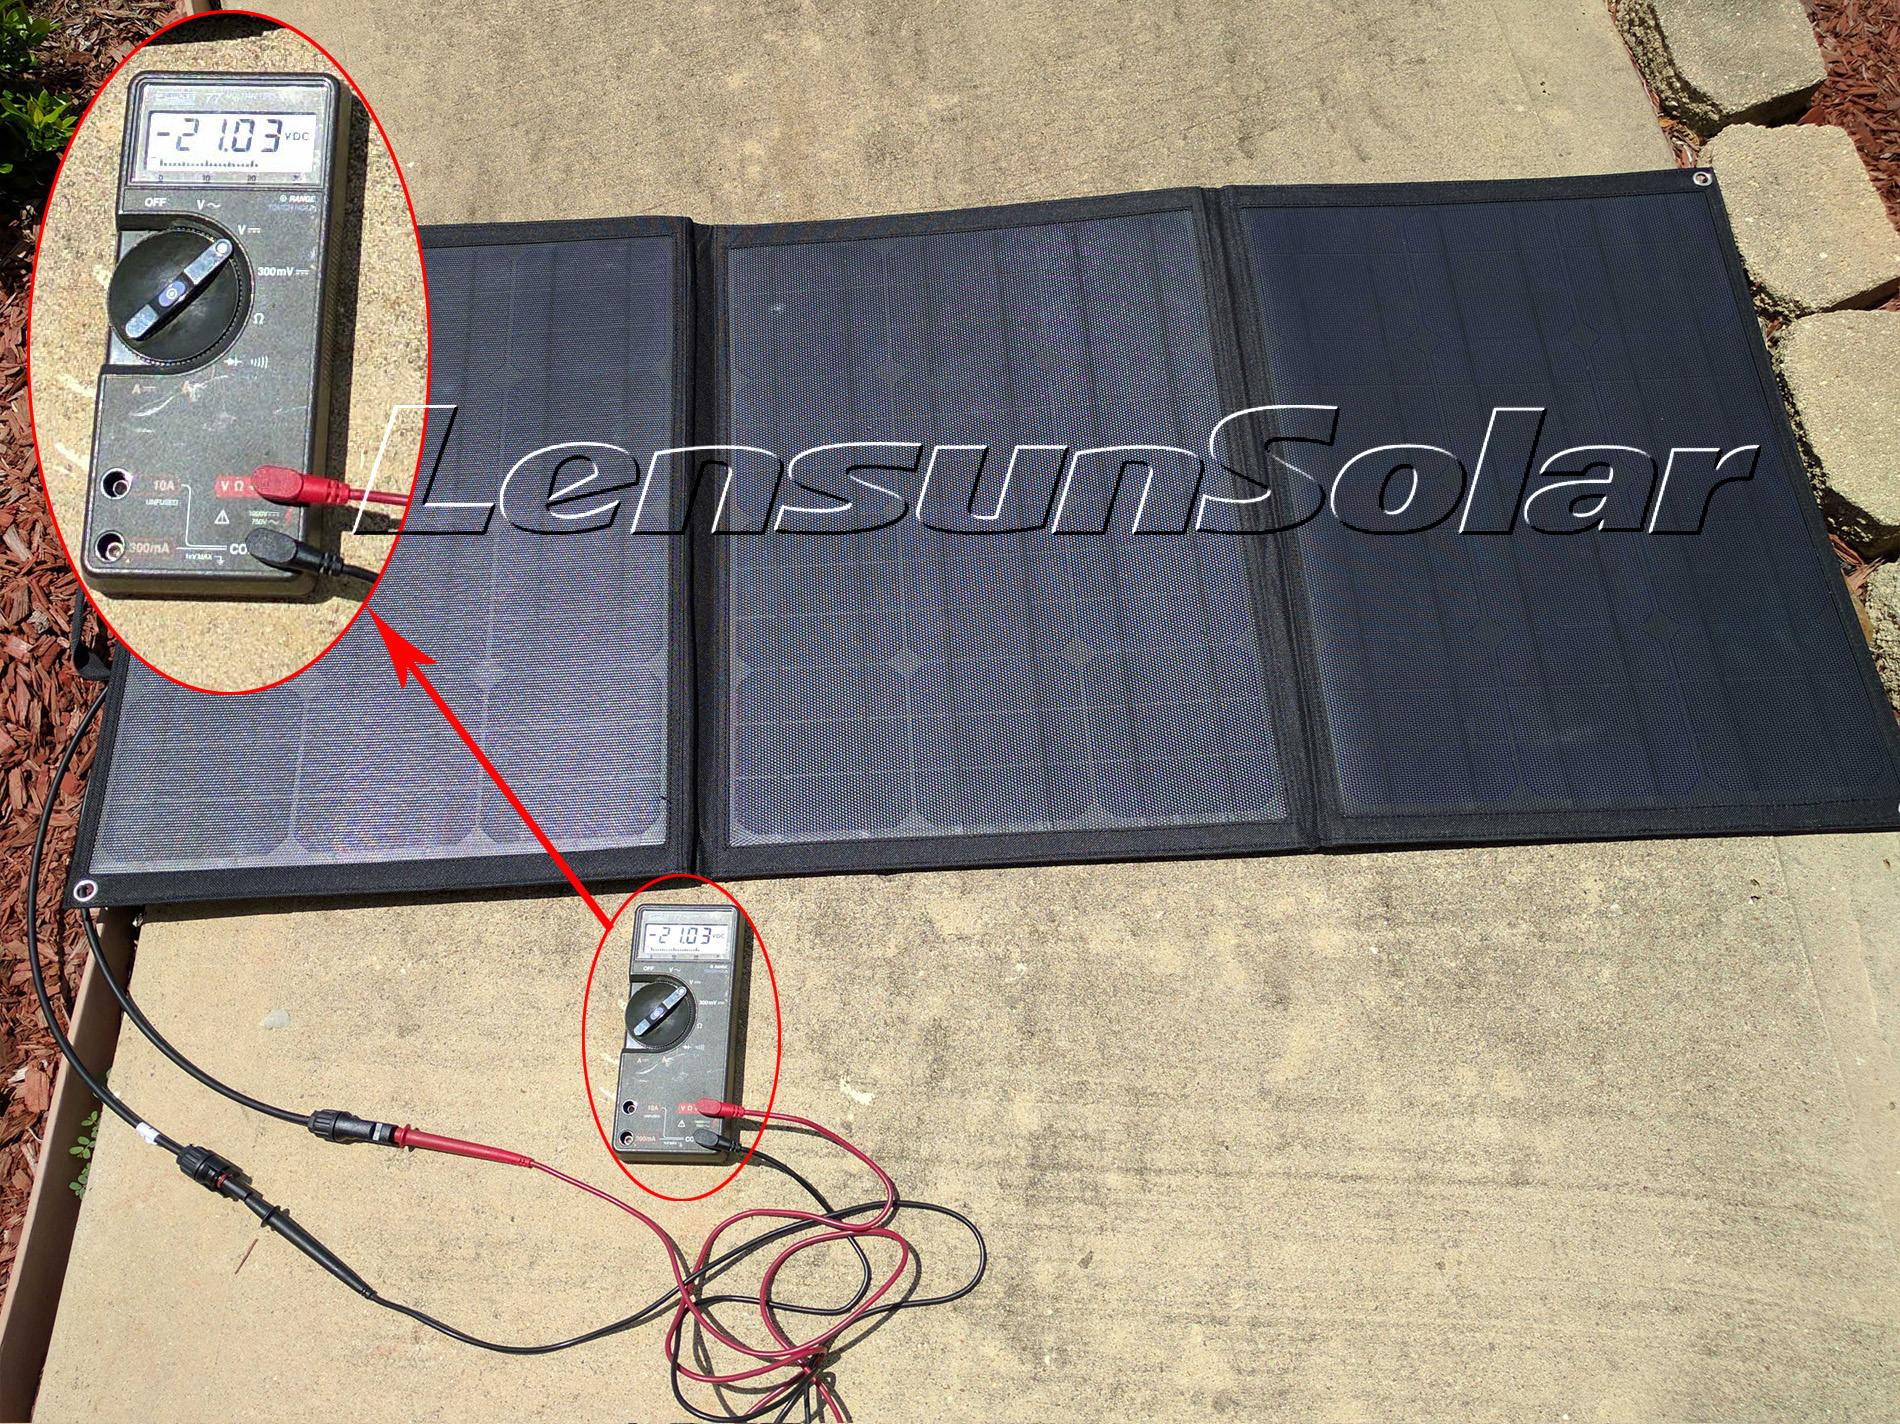 hight resolution of lensun portable 100w dc volts testing via multimeter